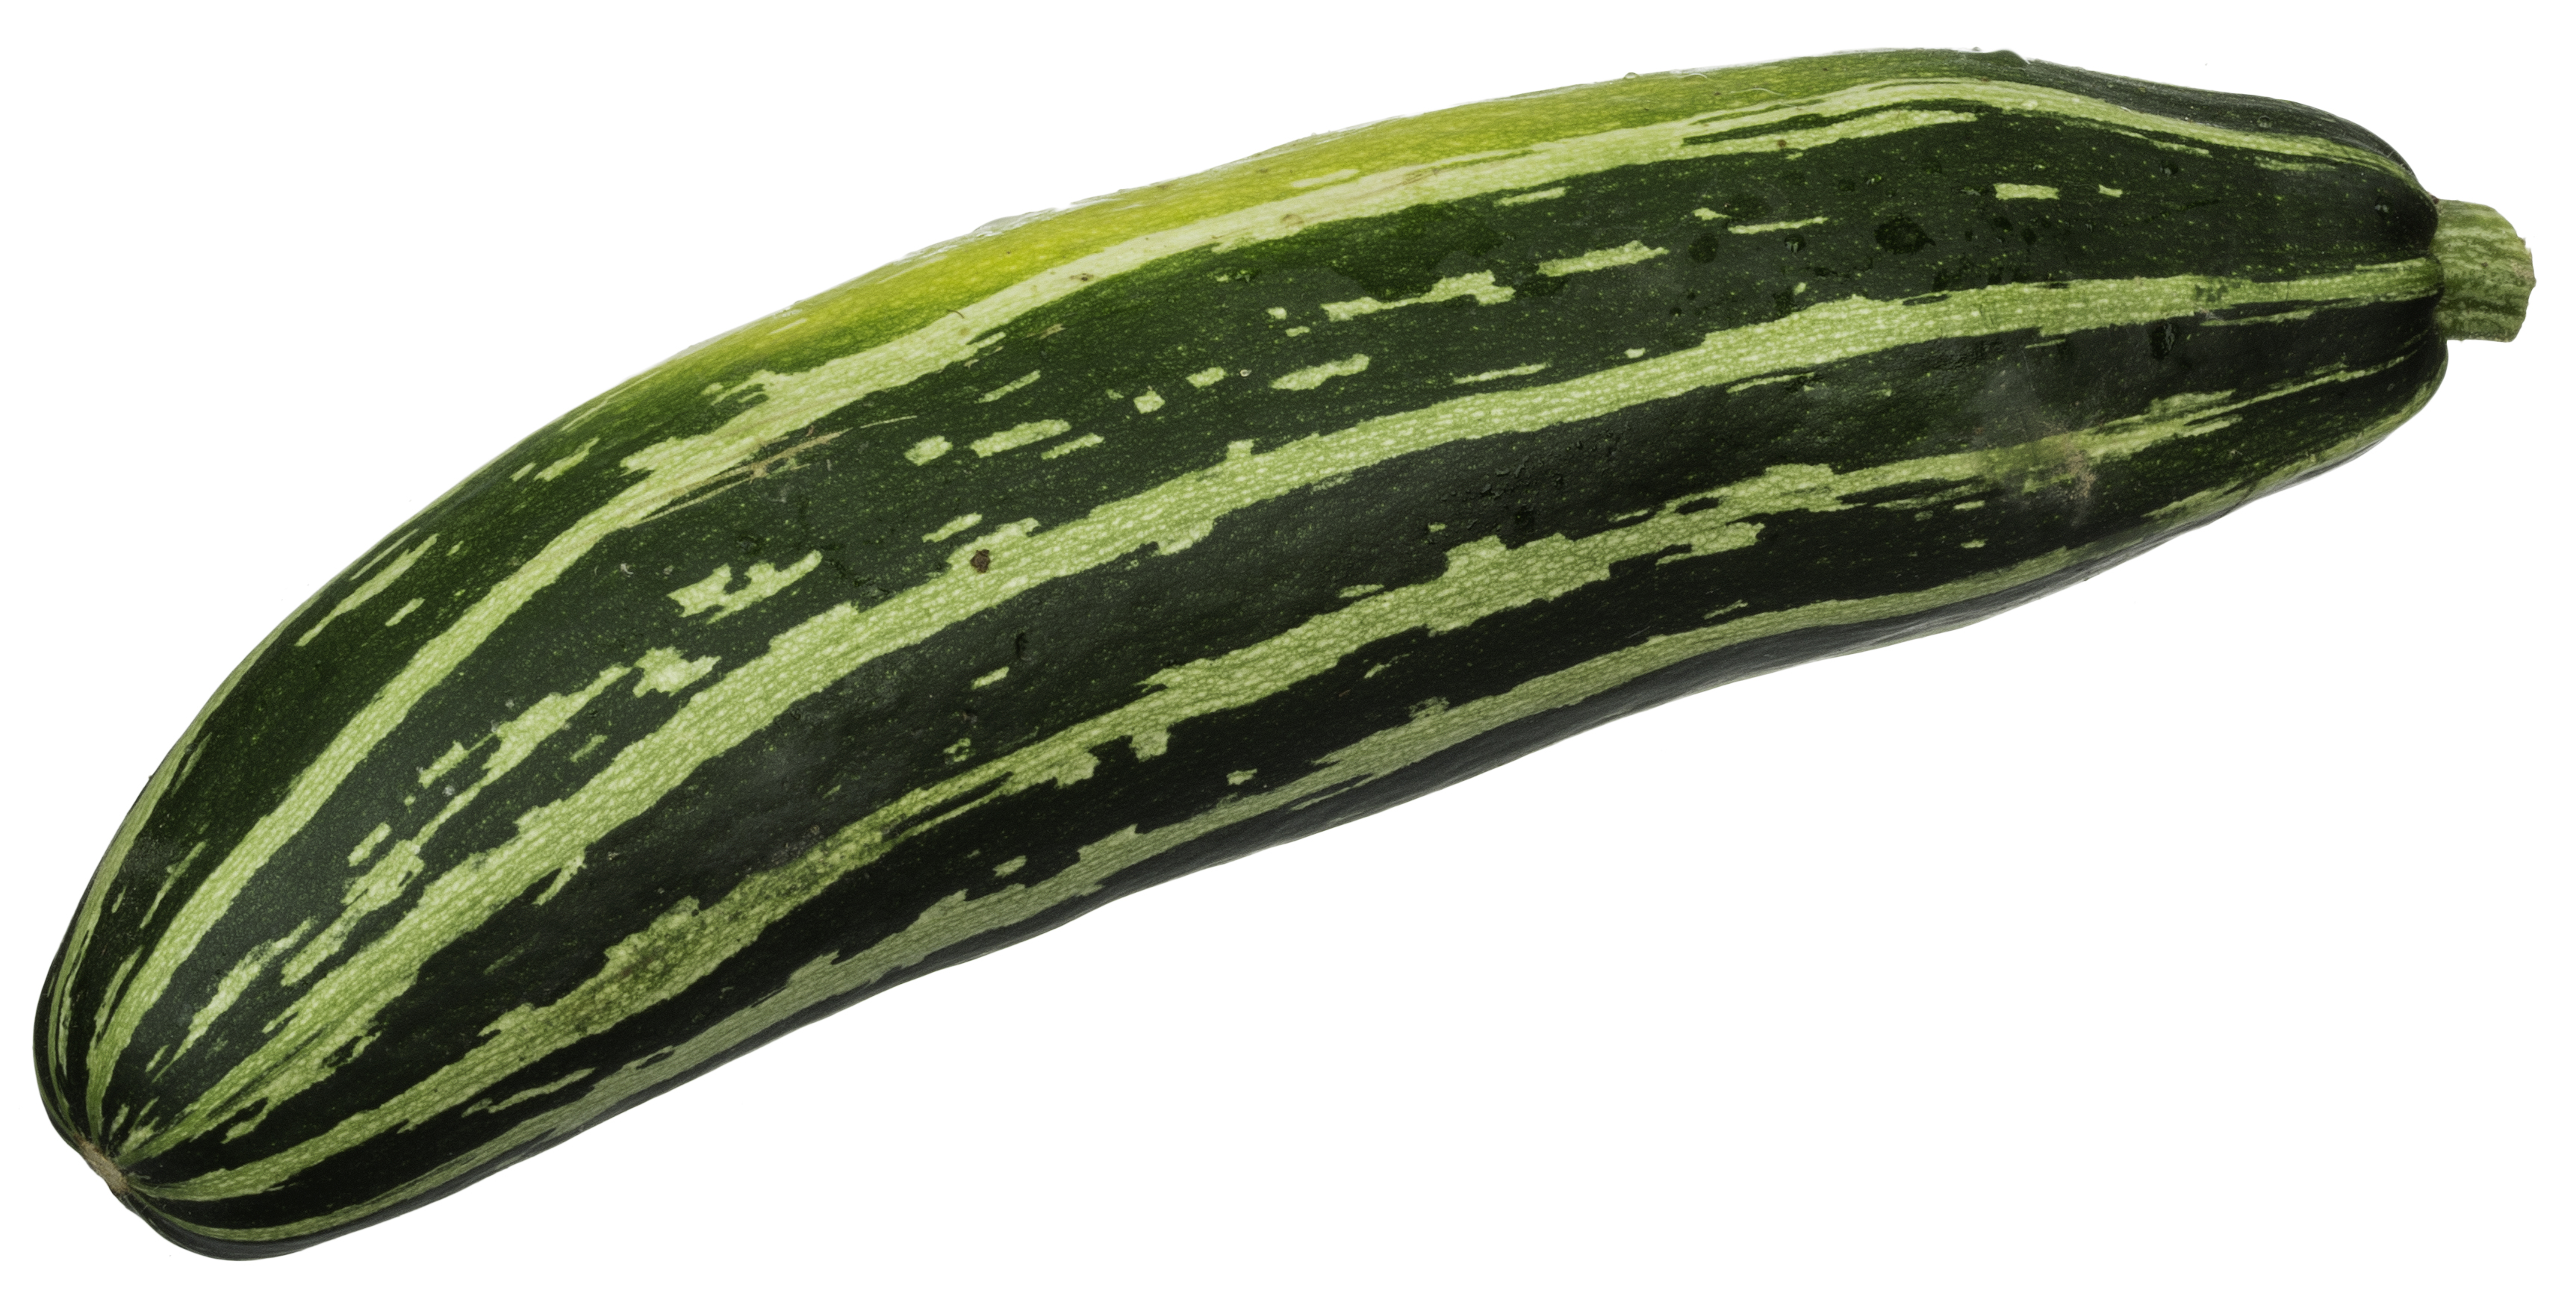 Zucchini clipart hindi Of  Types vegetables